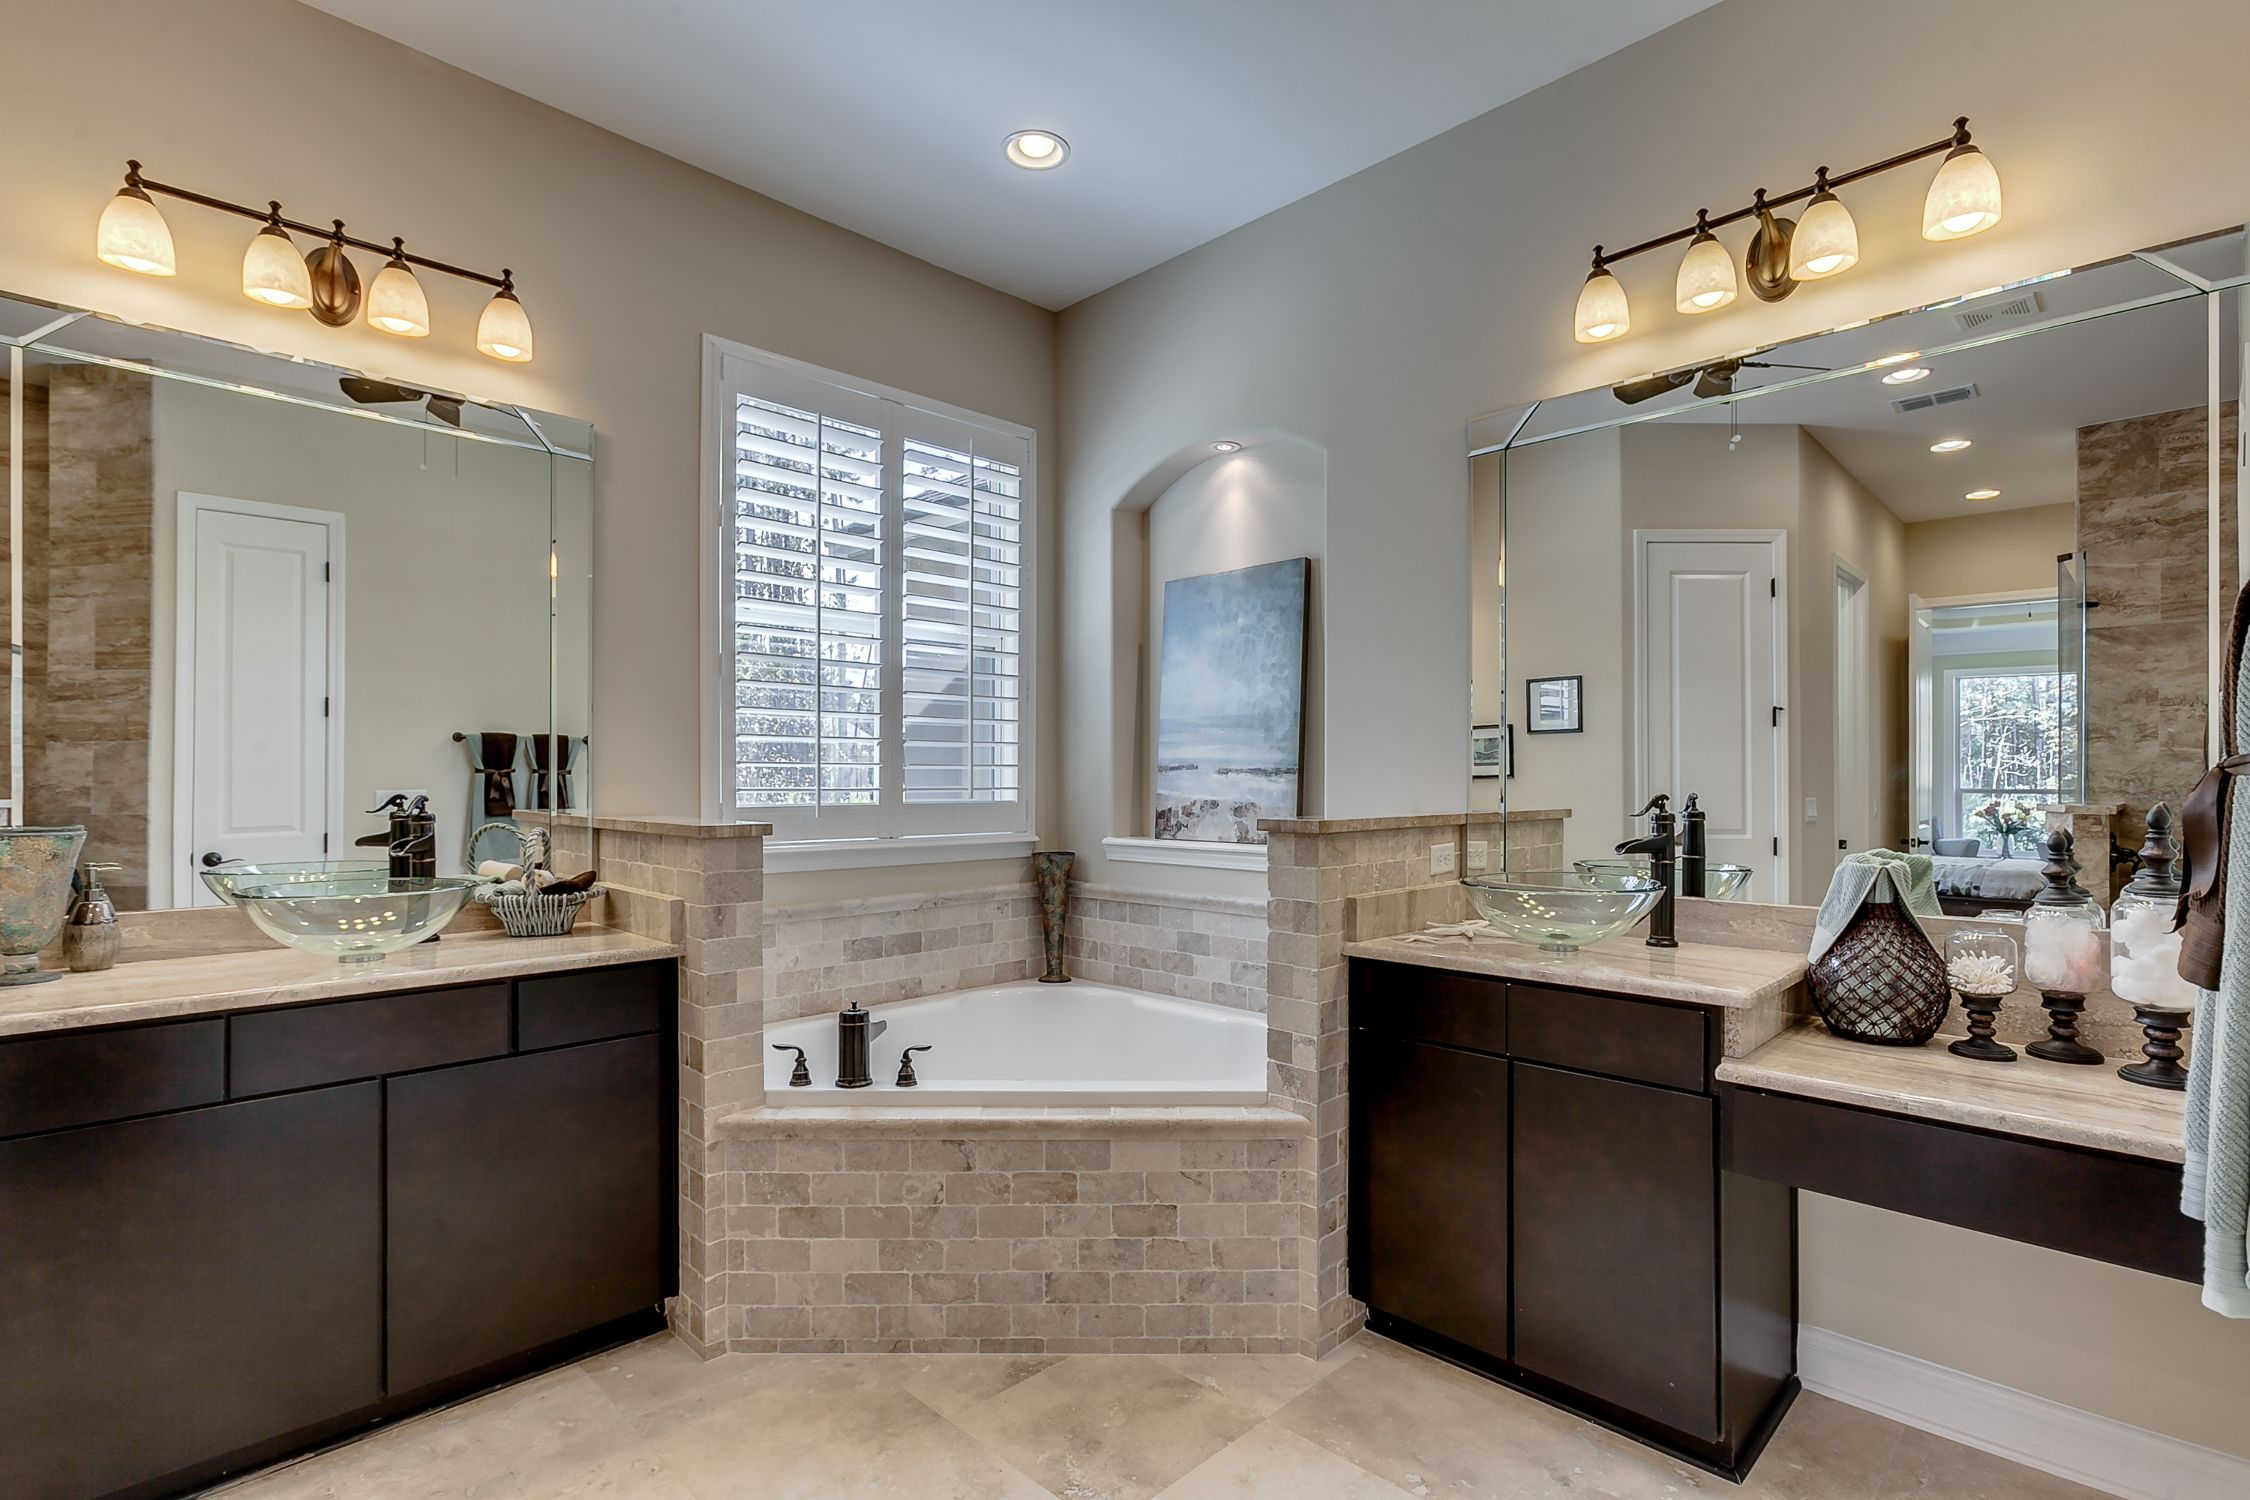 Image Result For New Model Home Bathrooms